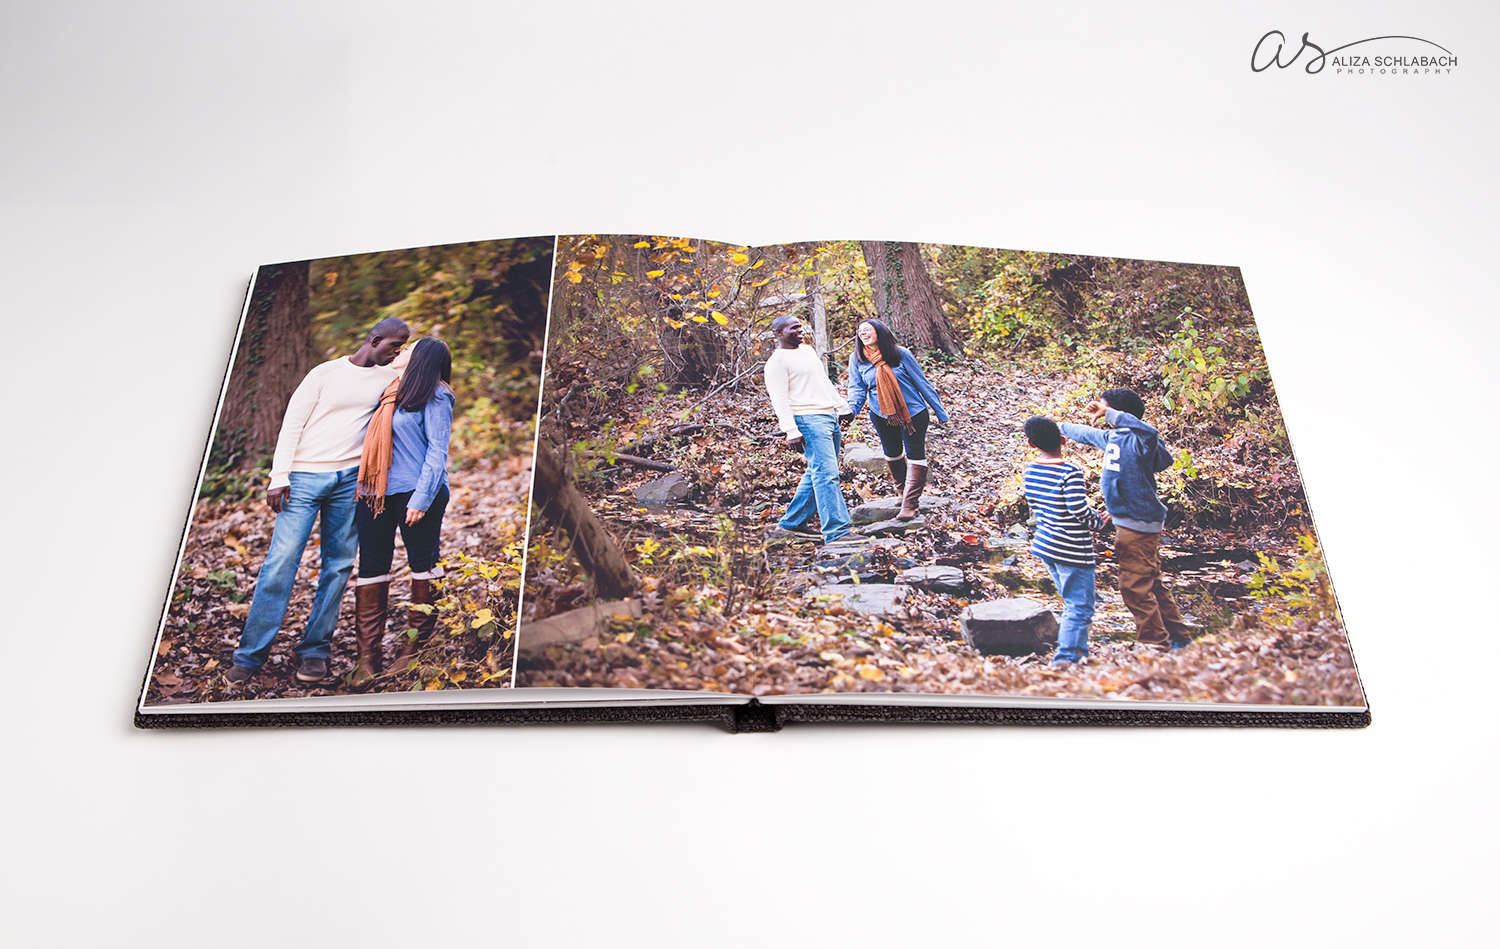 Photo of Lush Album. Aliza Schlabach Photography only offers albums available exclusively to professional photographers.